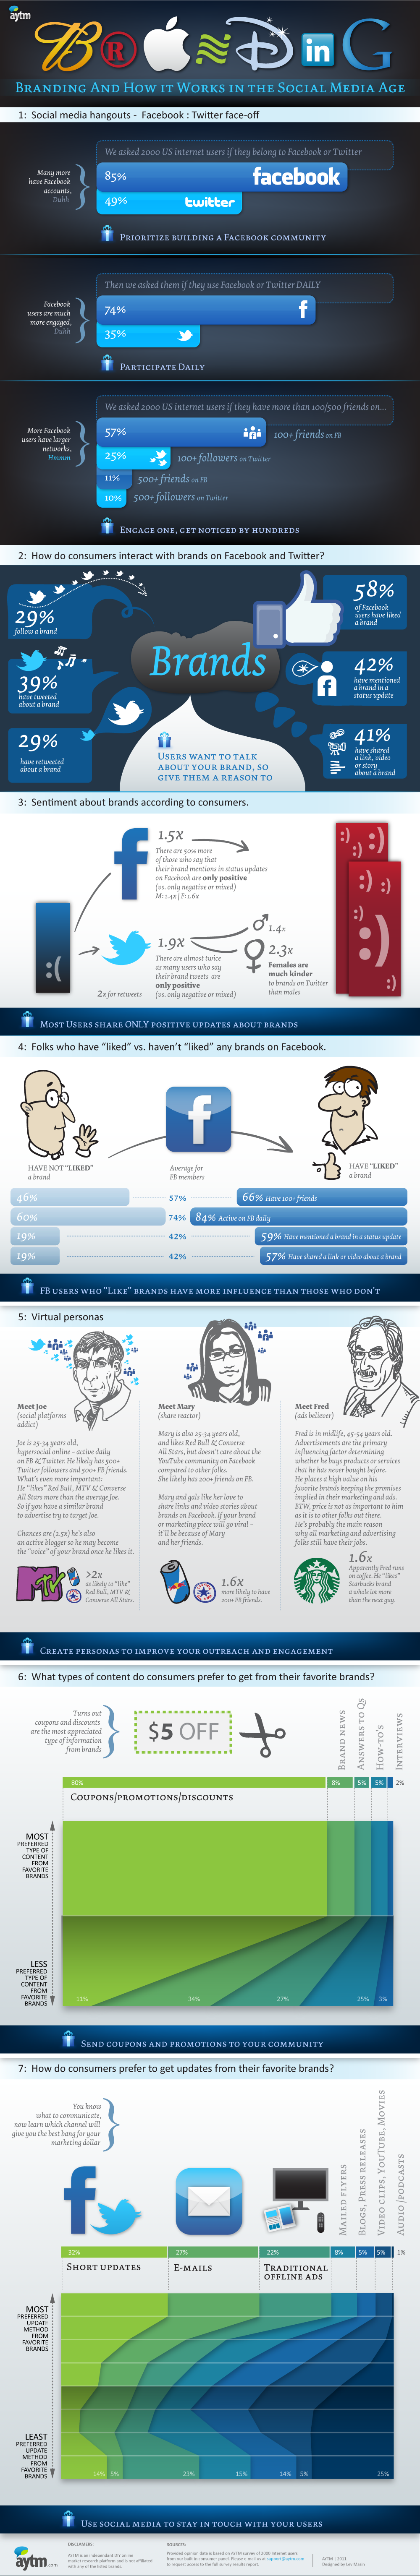 Branding and how it works in the social media age.